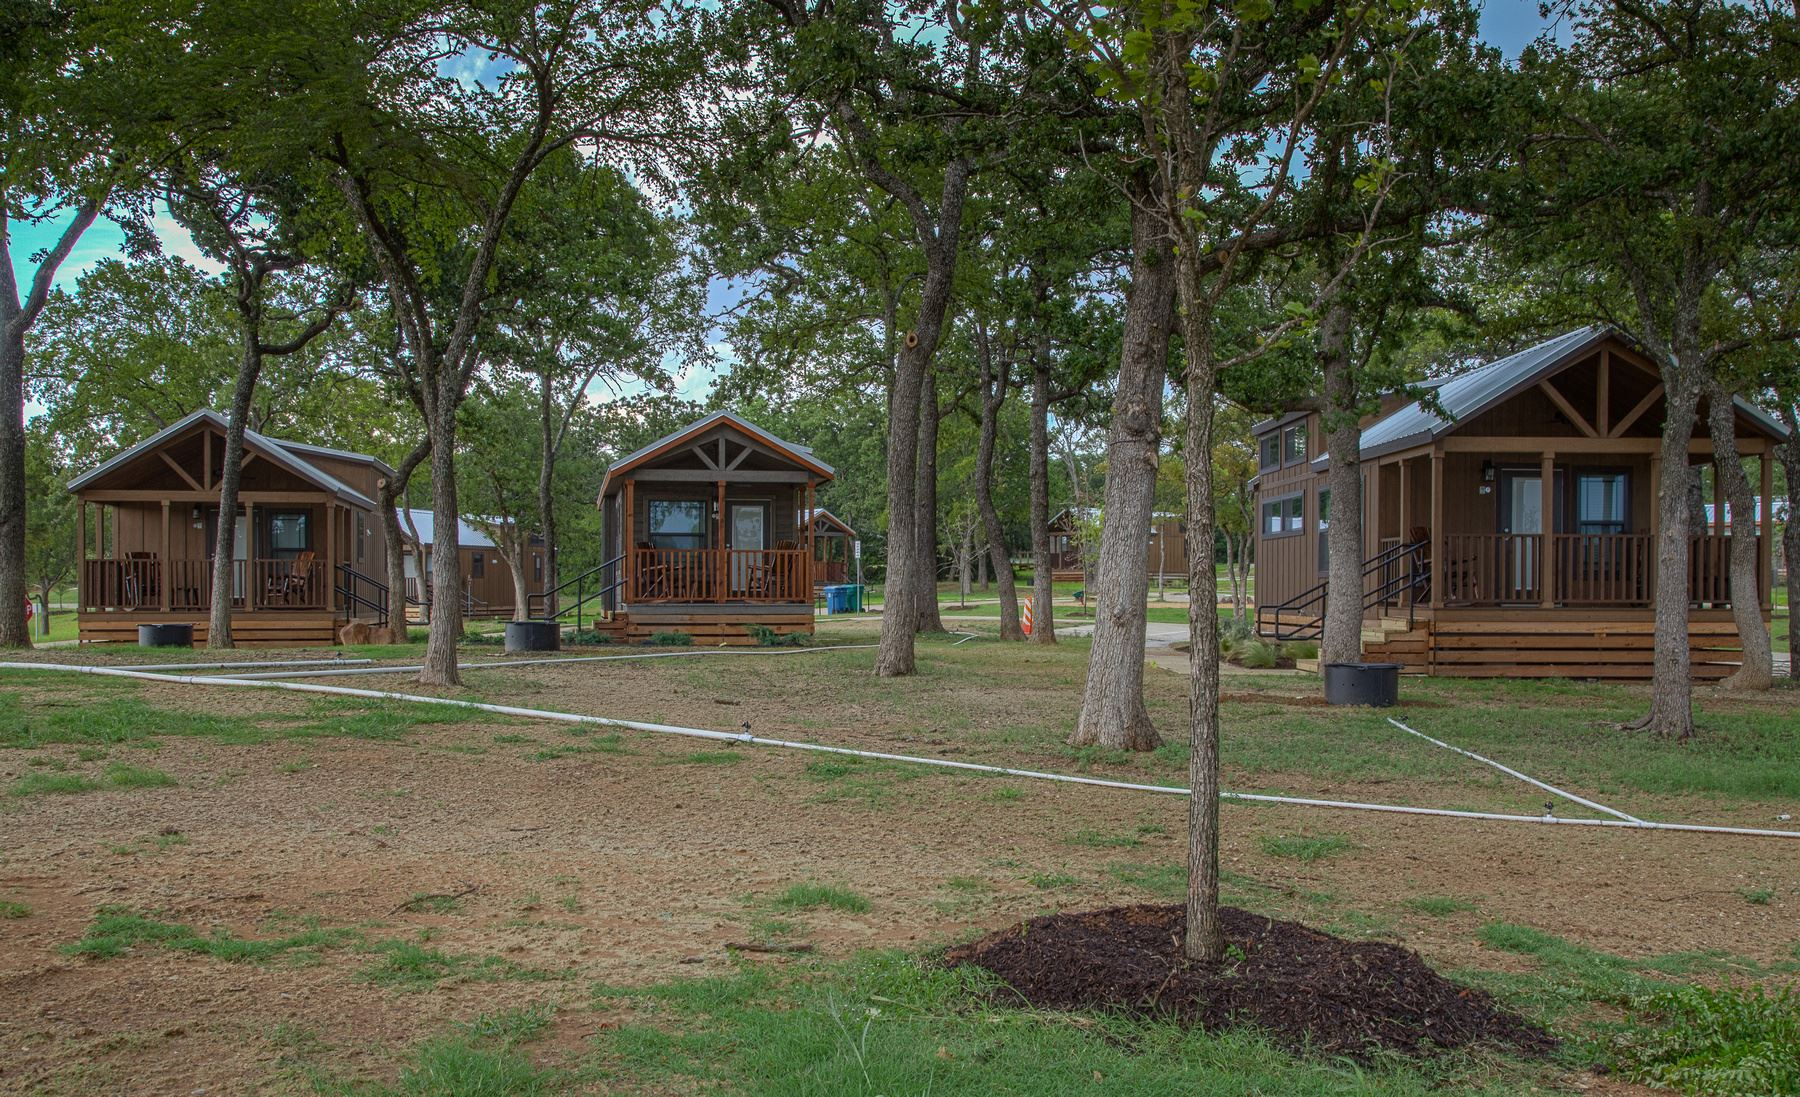 View of three cabins at Twin Coves Park